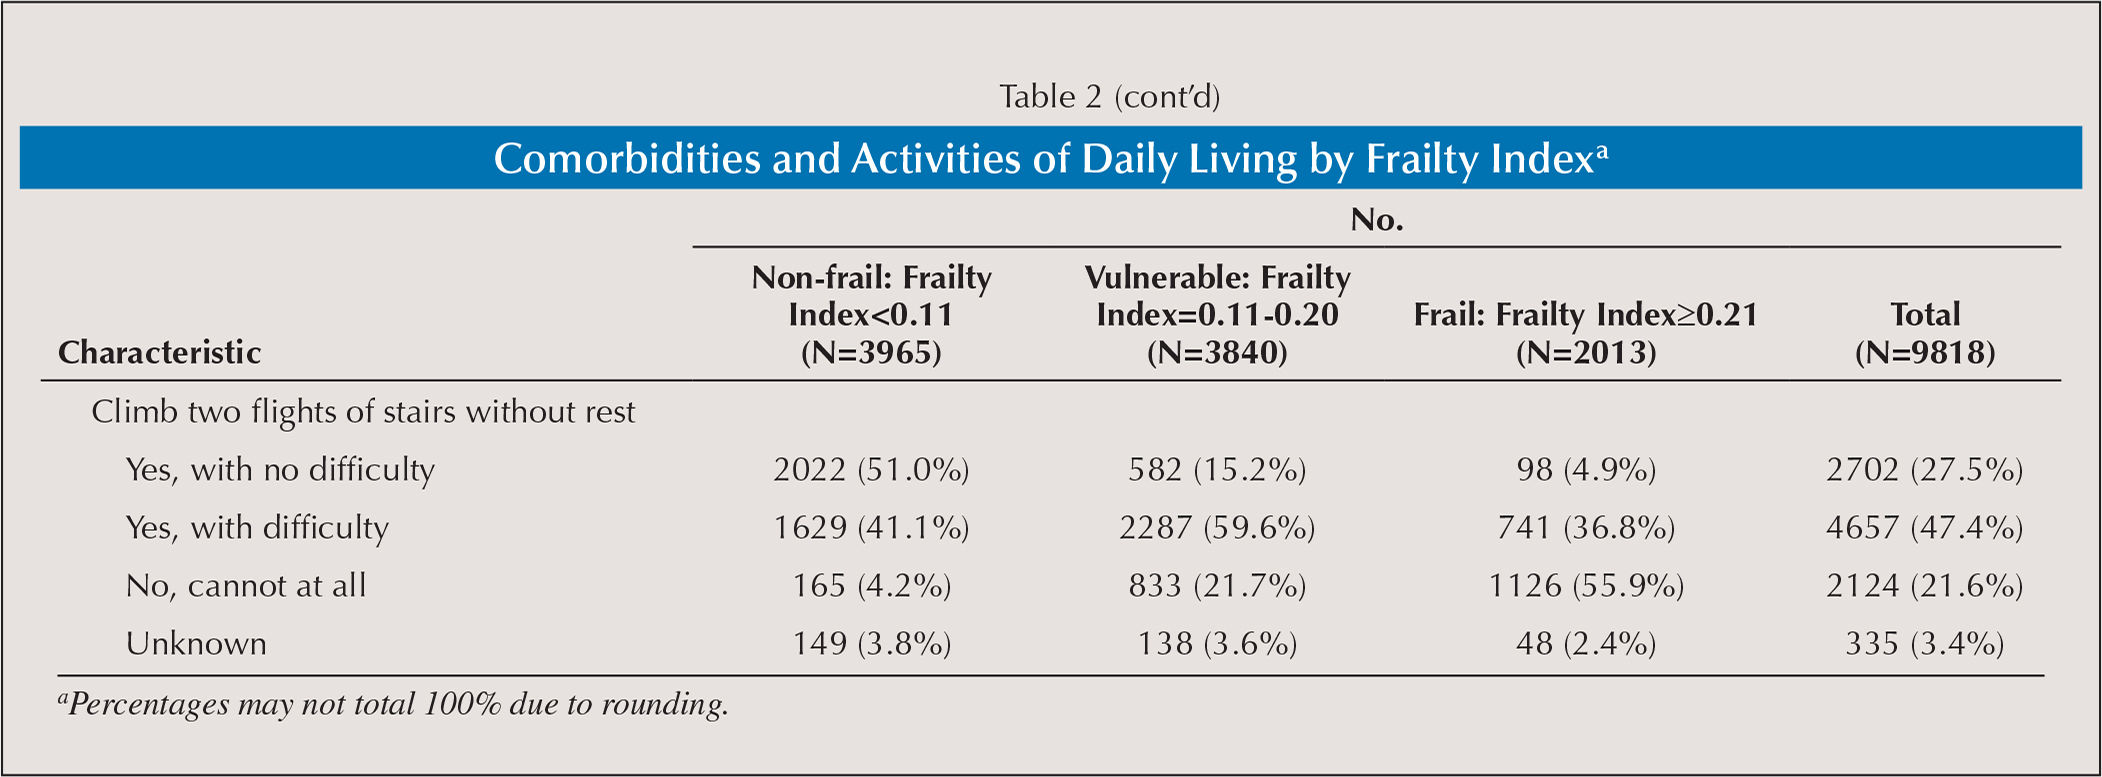 Comorbidities and Activities of Daily Living by Frailty Indexa